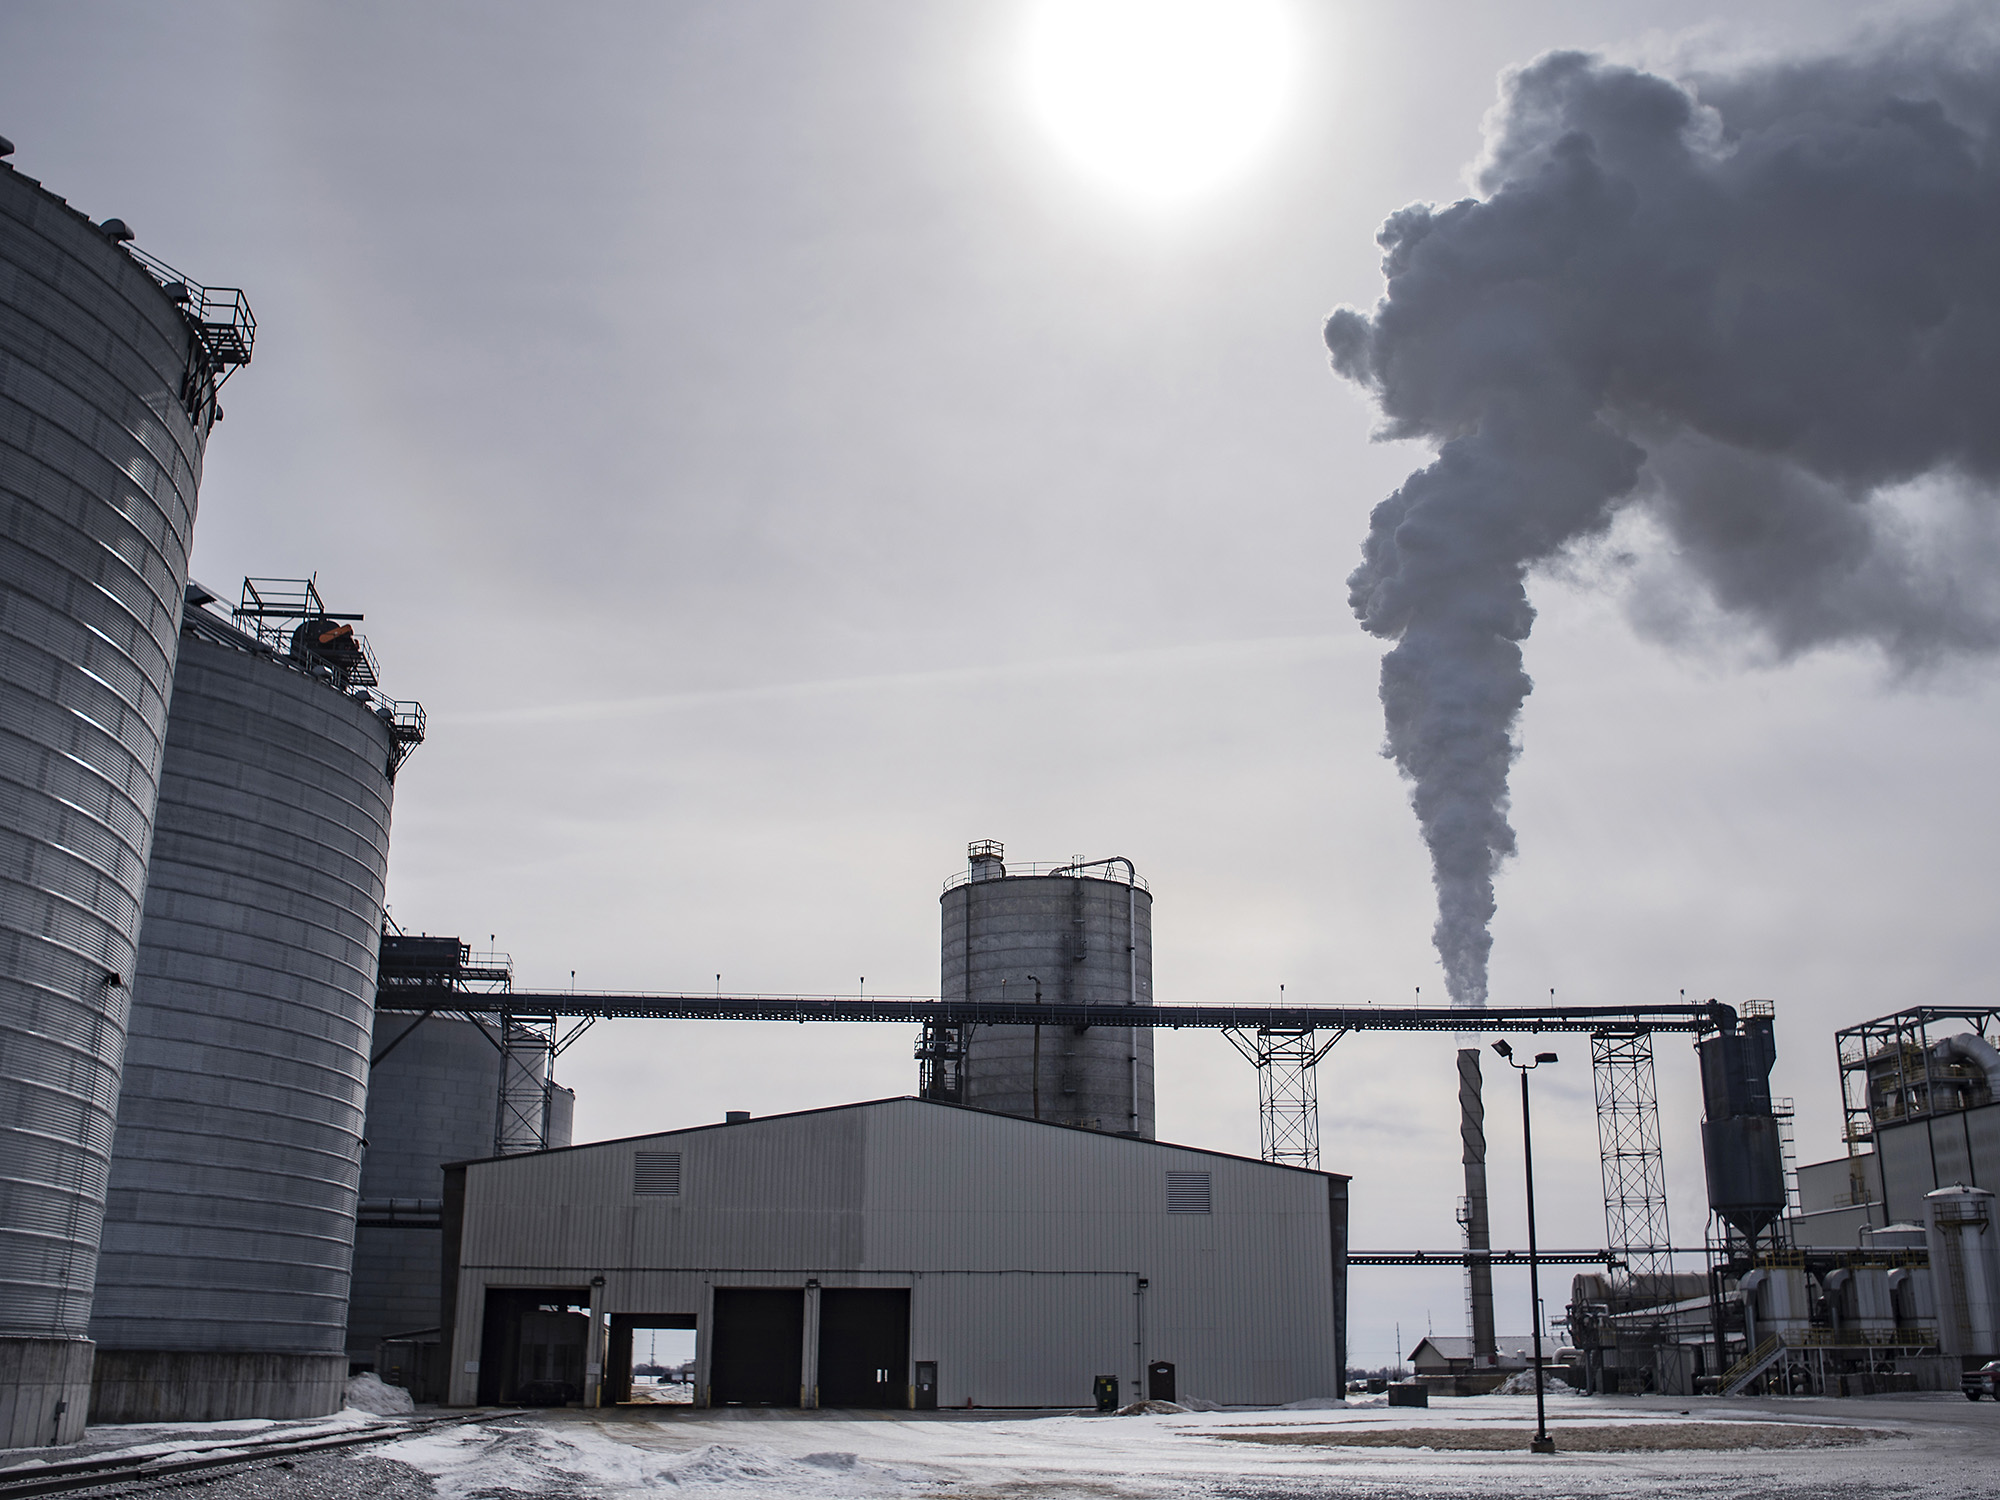 Steam billows out of a smokestack at a biorefining facility in Jewell, Iowa.